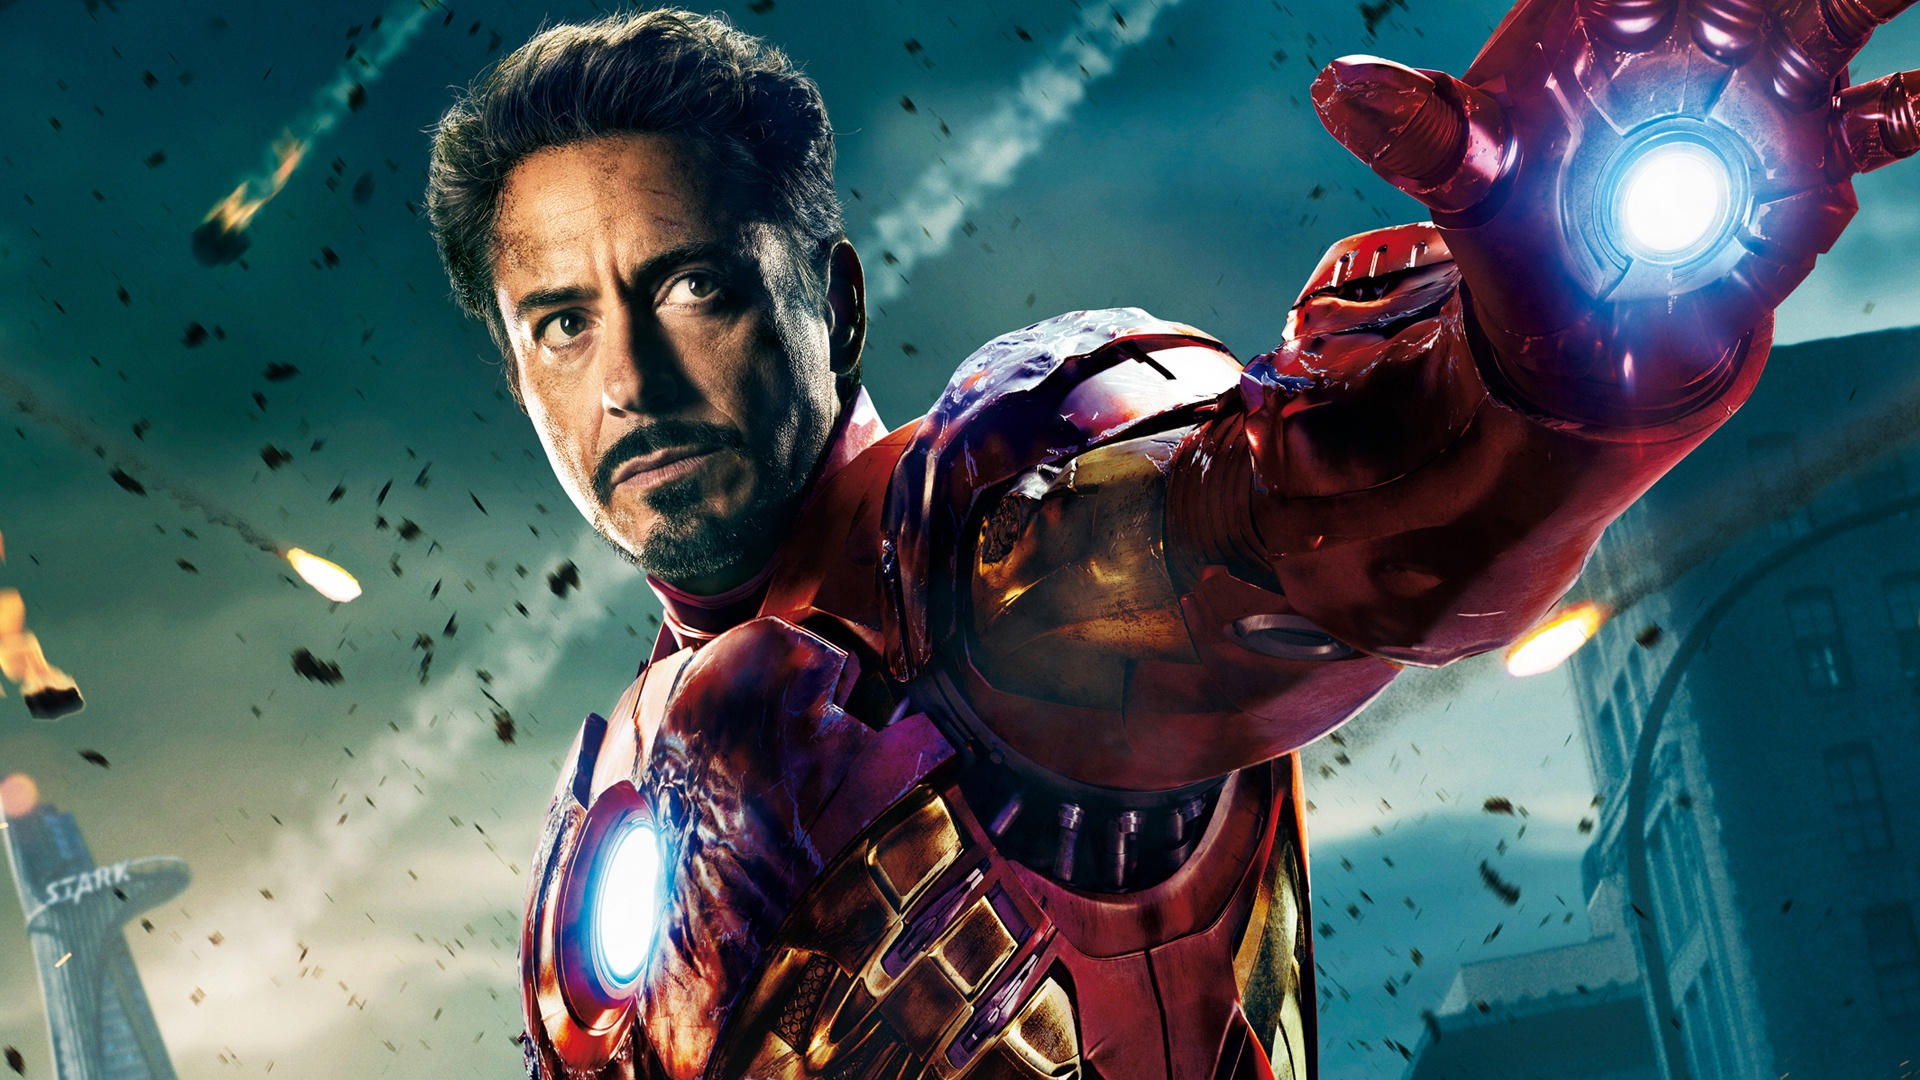 Iron Man 3 1080 Hd 26 Thumb